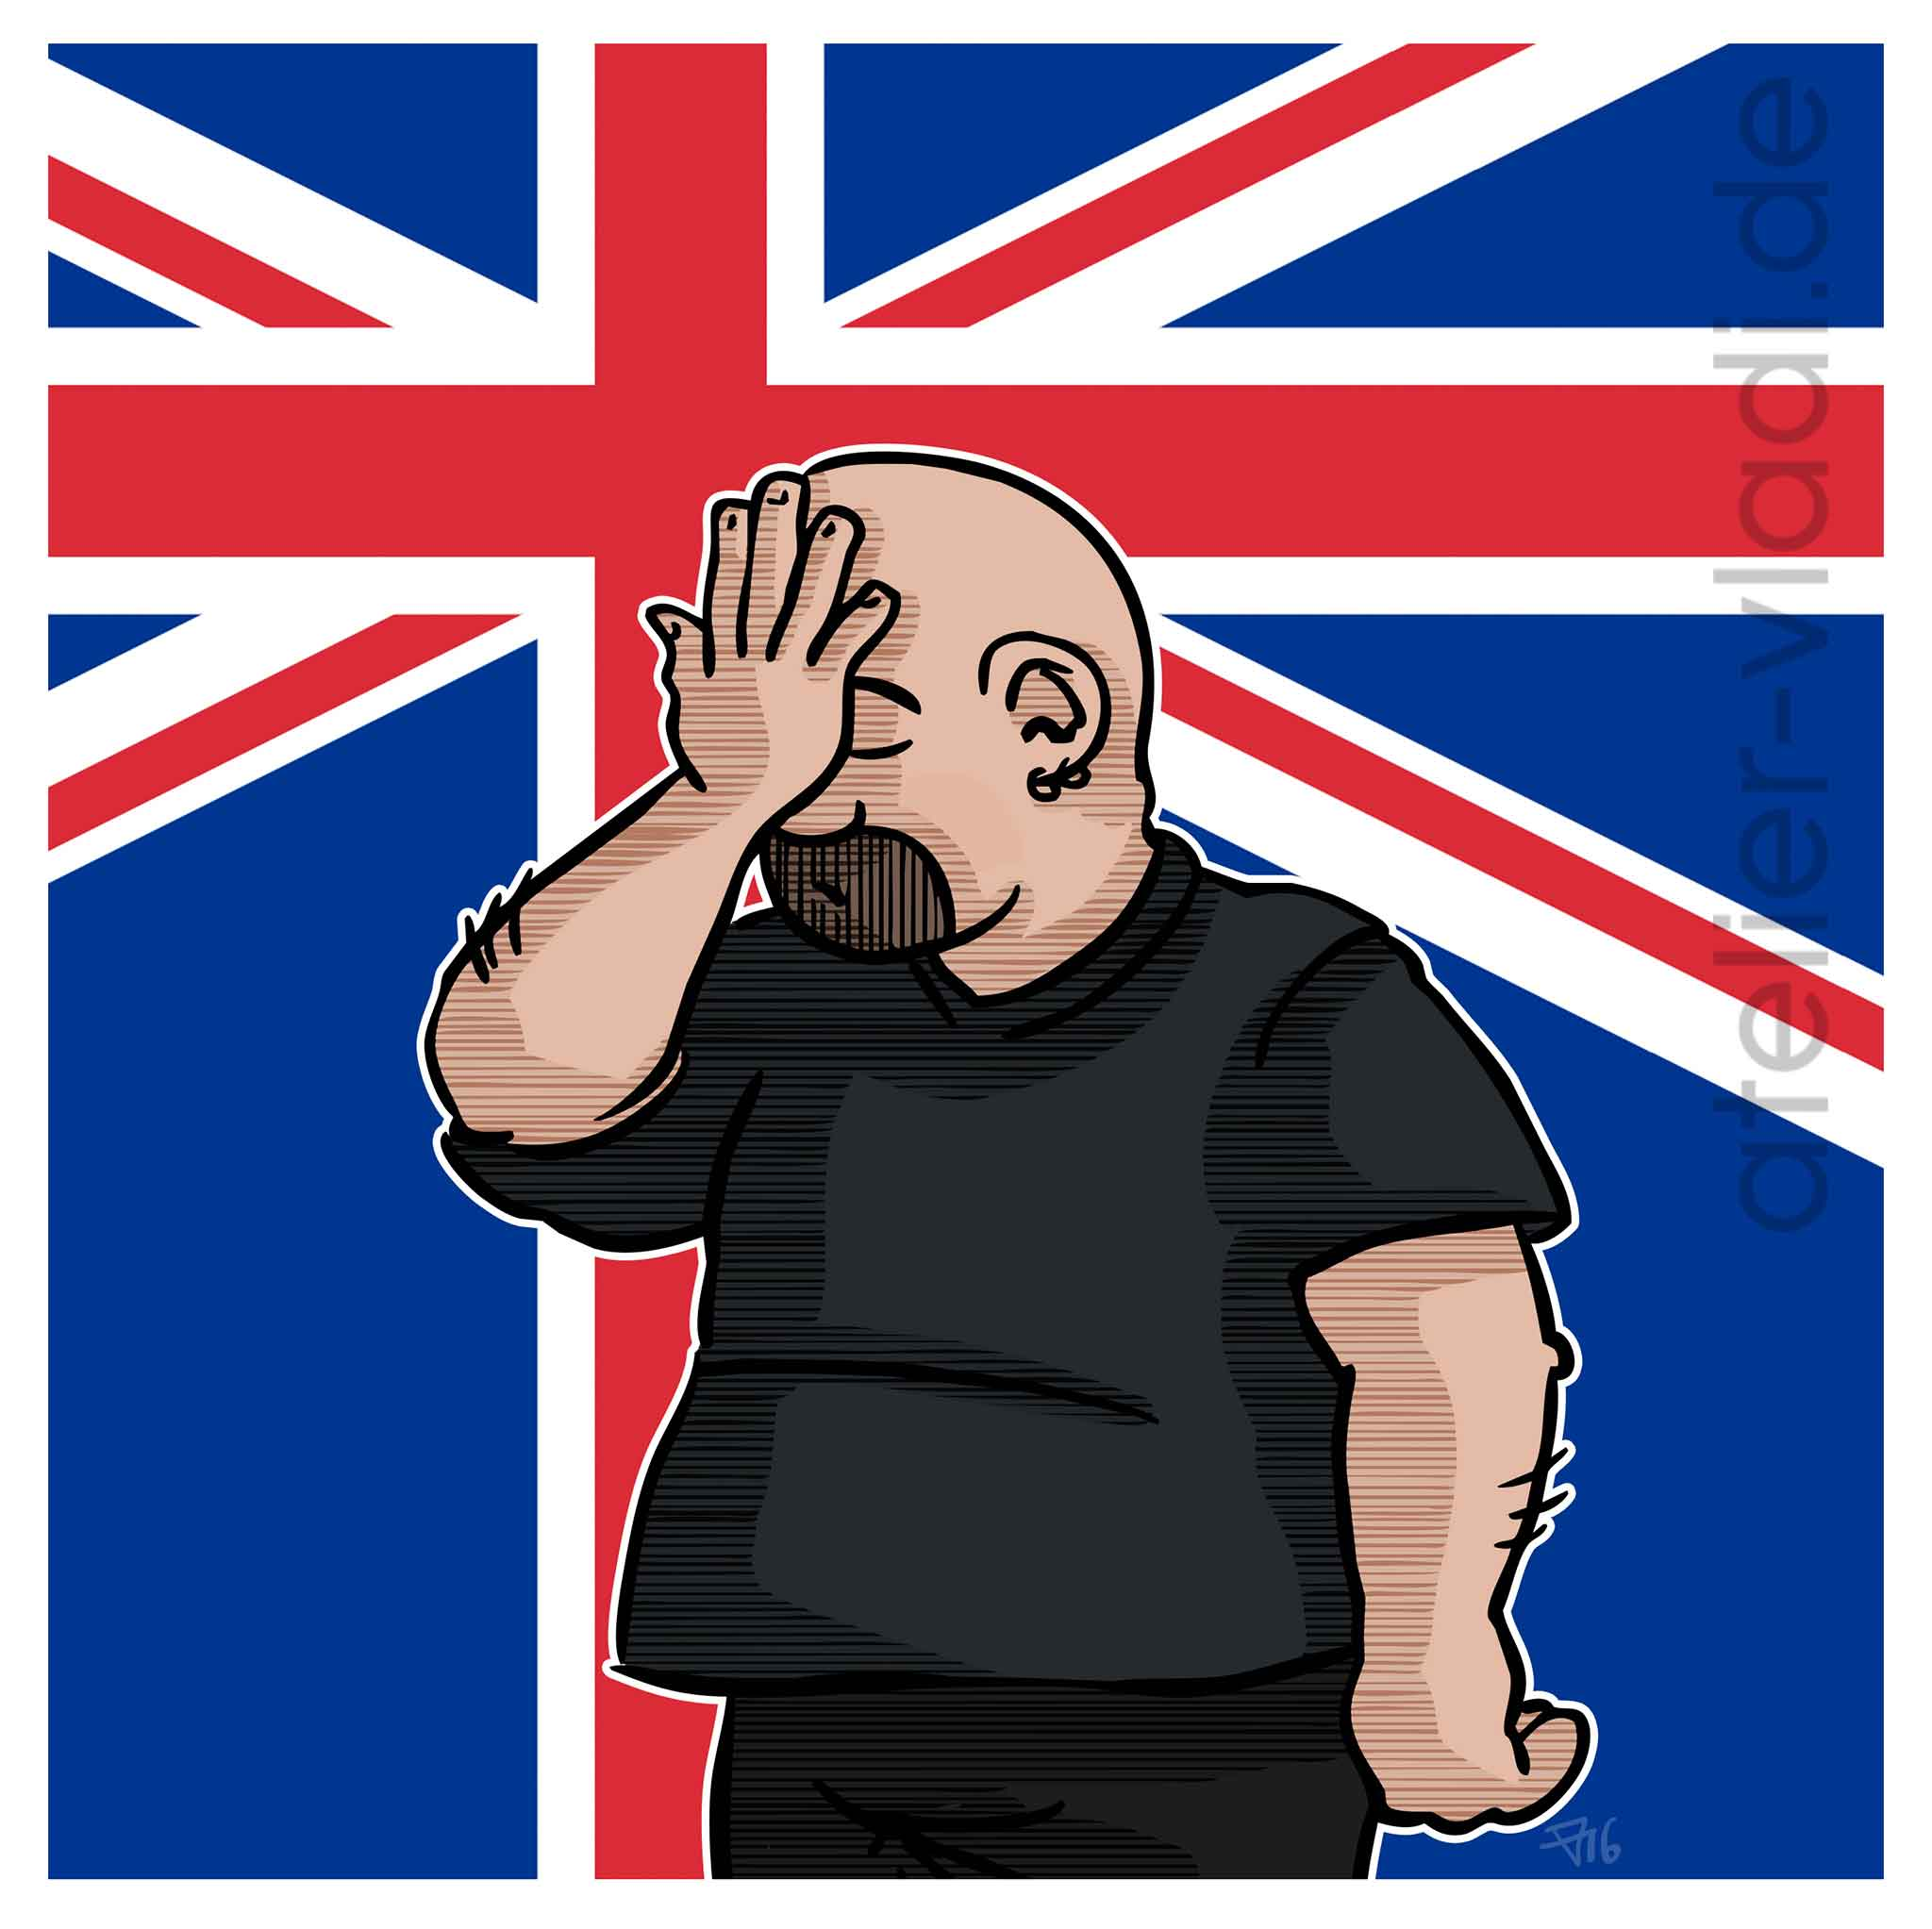 Cartoon Politisch politische Cartoons Karikaturen Brexit Cartoon Facepalm